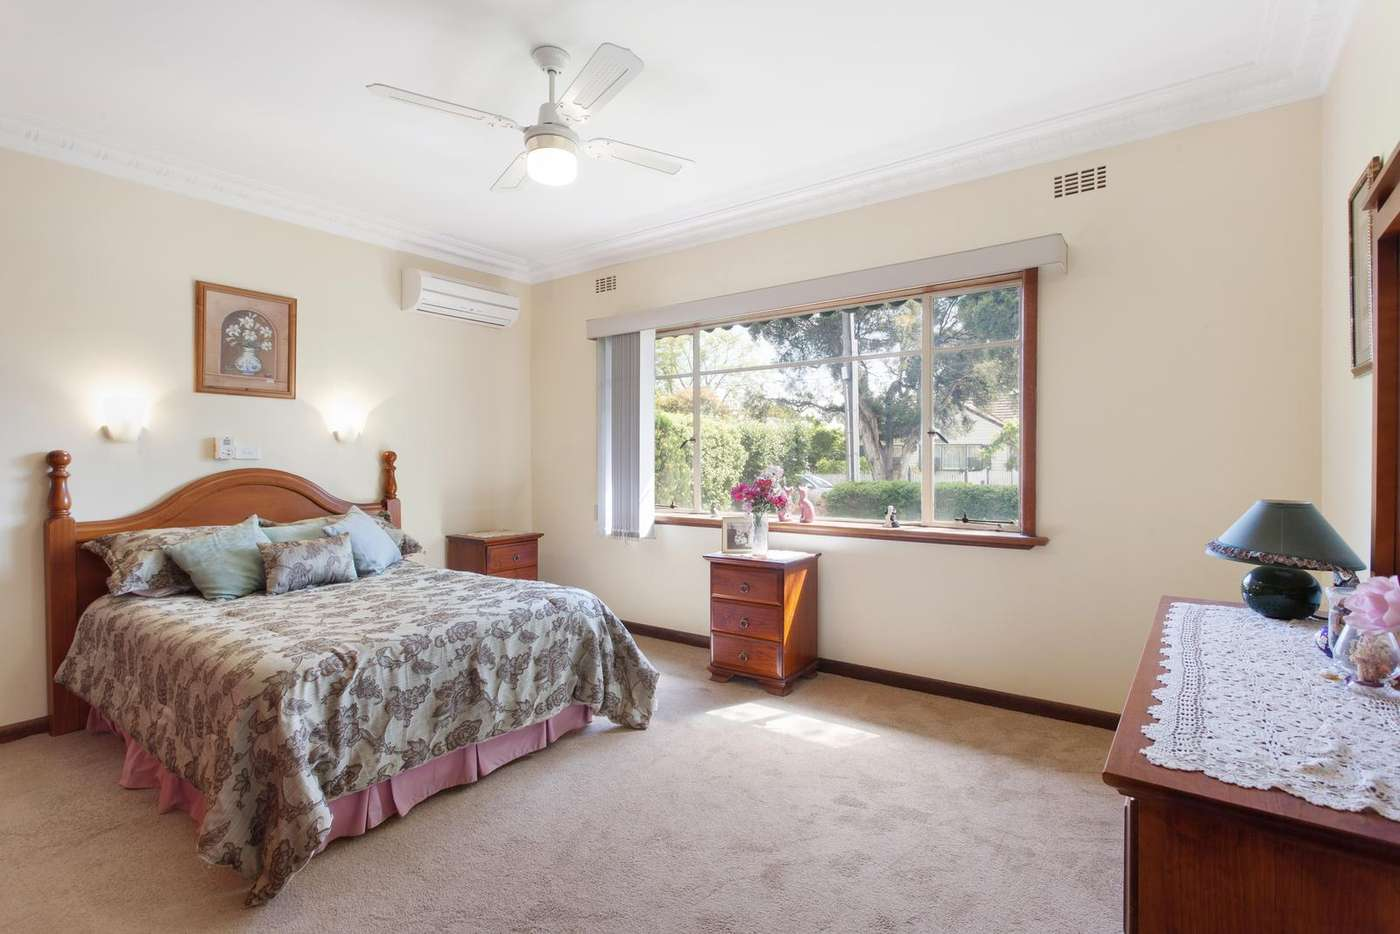 Fifth view of Homely house listing, 39 Olympiad Crescent, Box Hill North VIC 3129